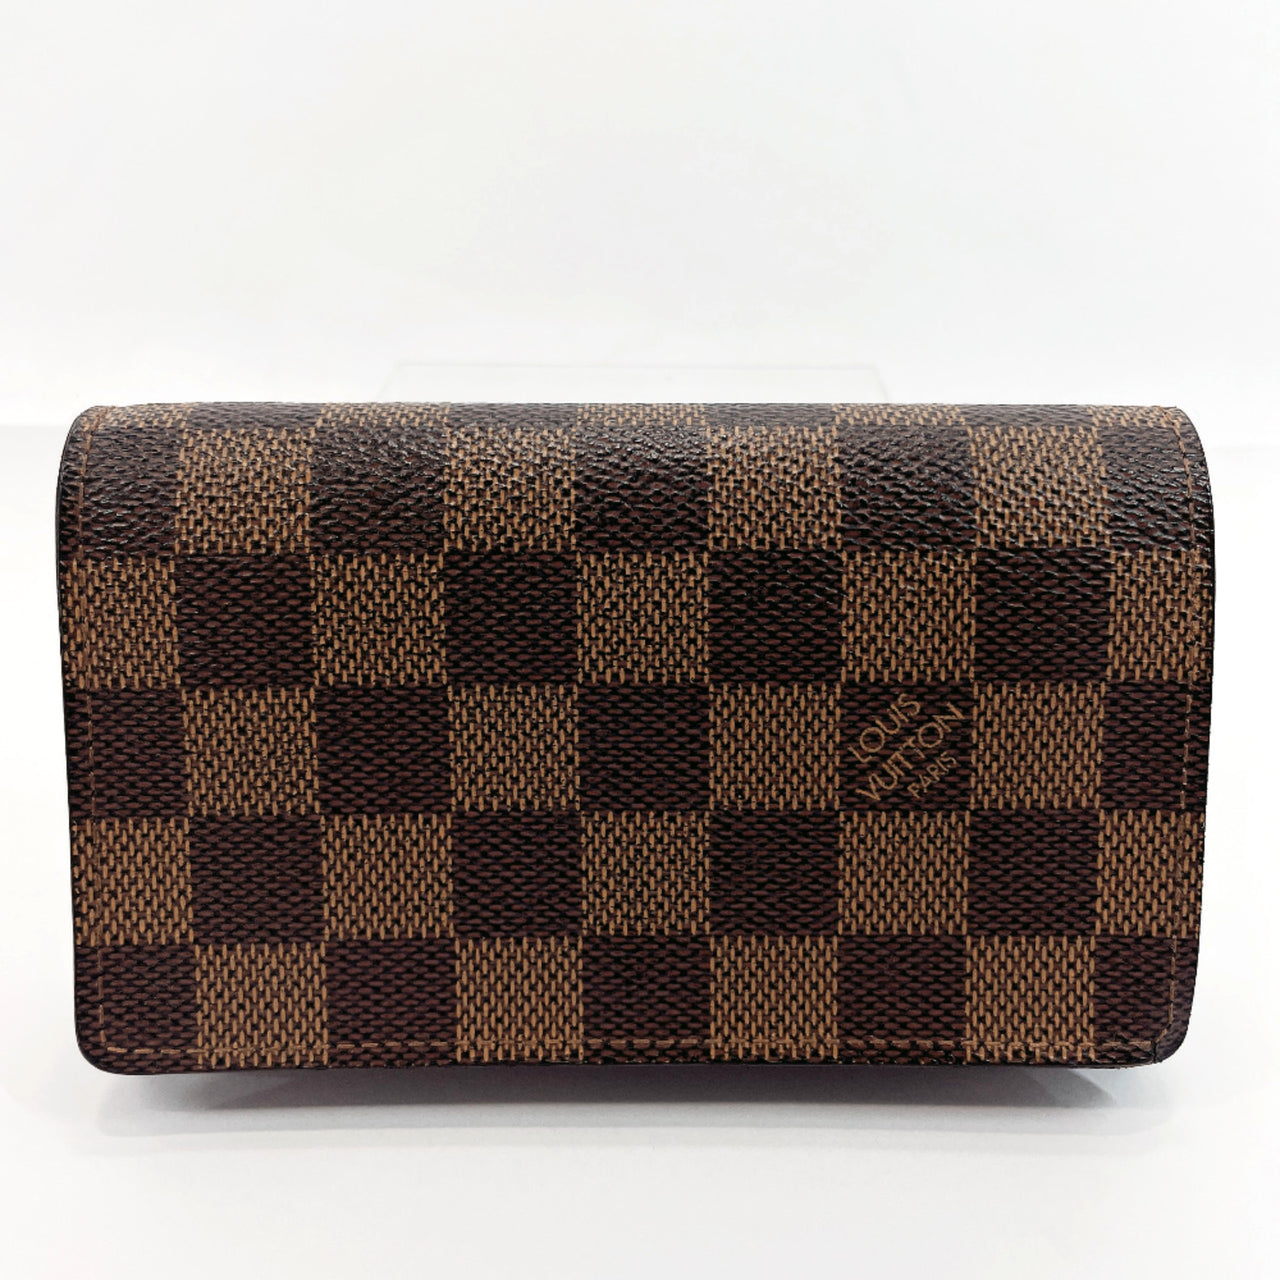 LOUIS VUITTON wallet N61736 Portefeiulle Tresol L-shaped fastener Damier canvas Brown Women Used